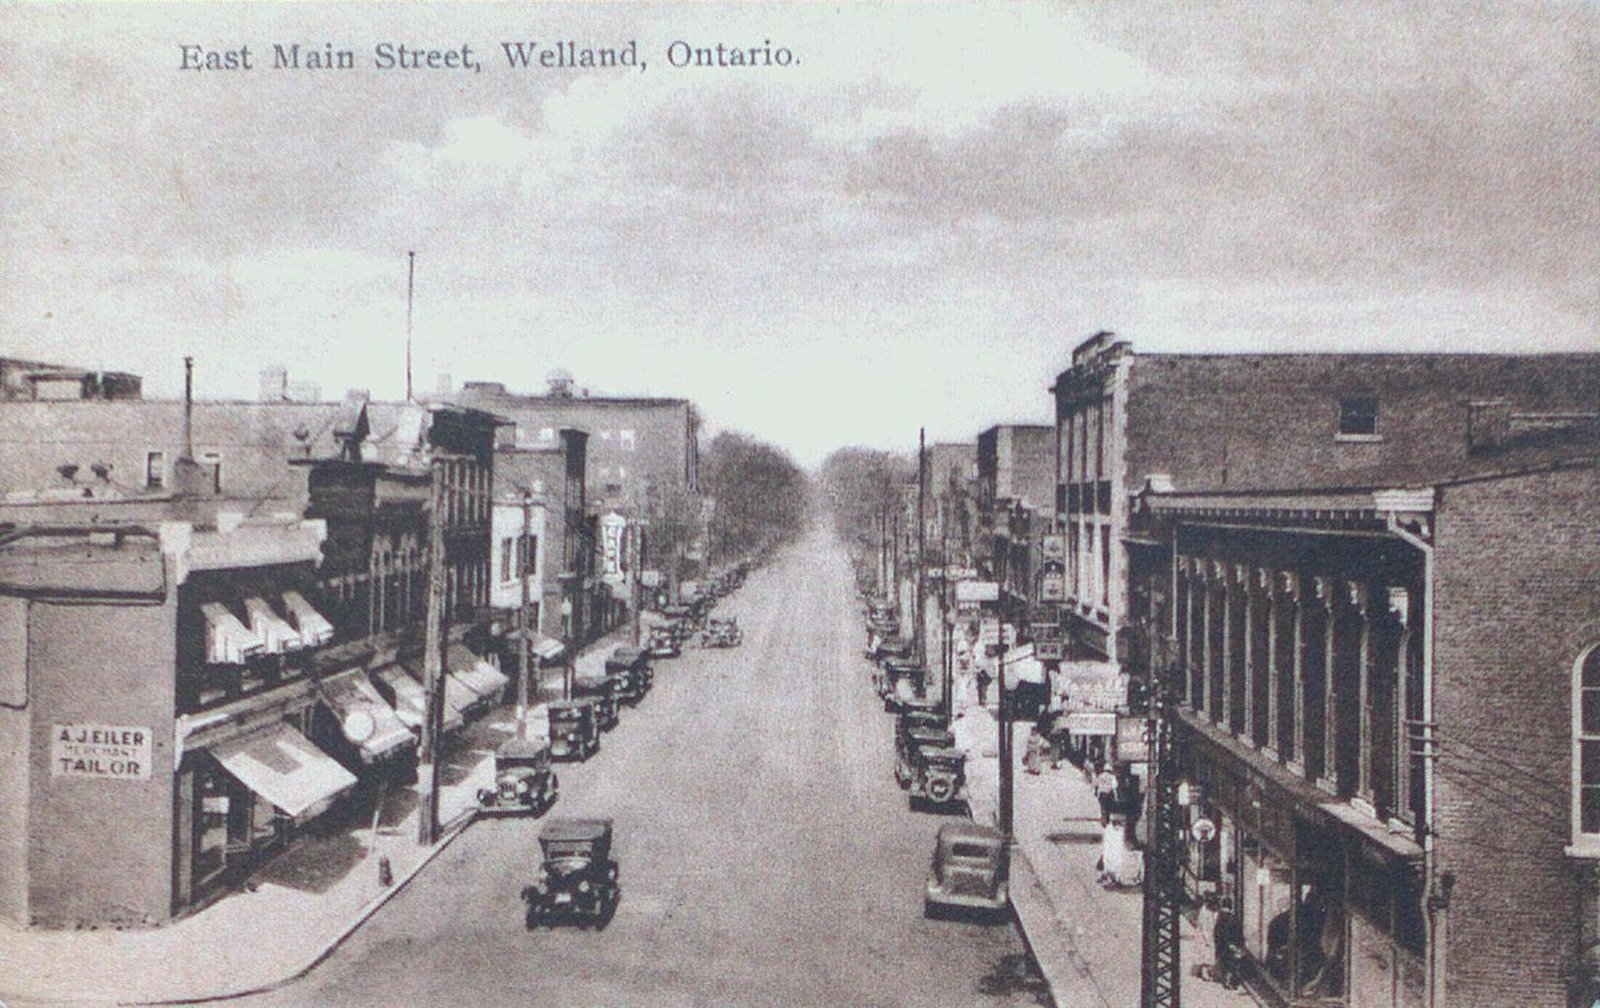 East Main Street, Welland